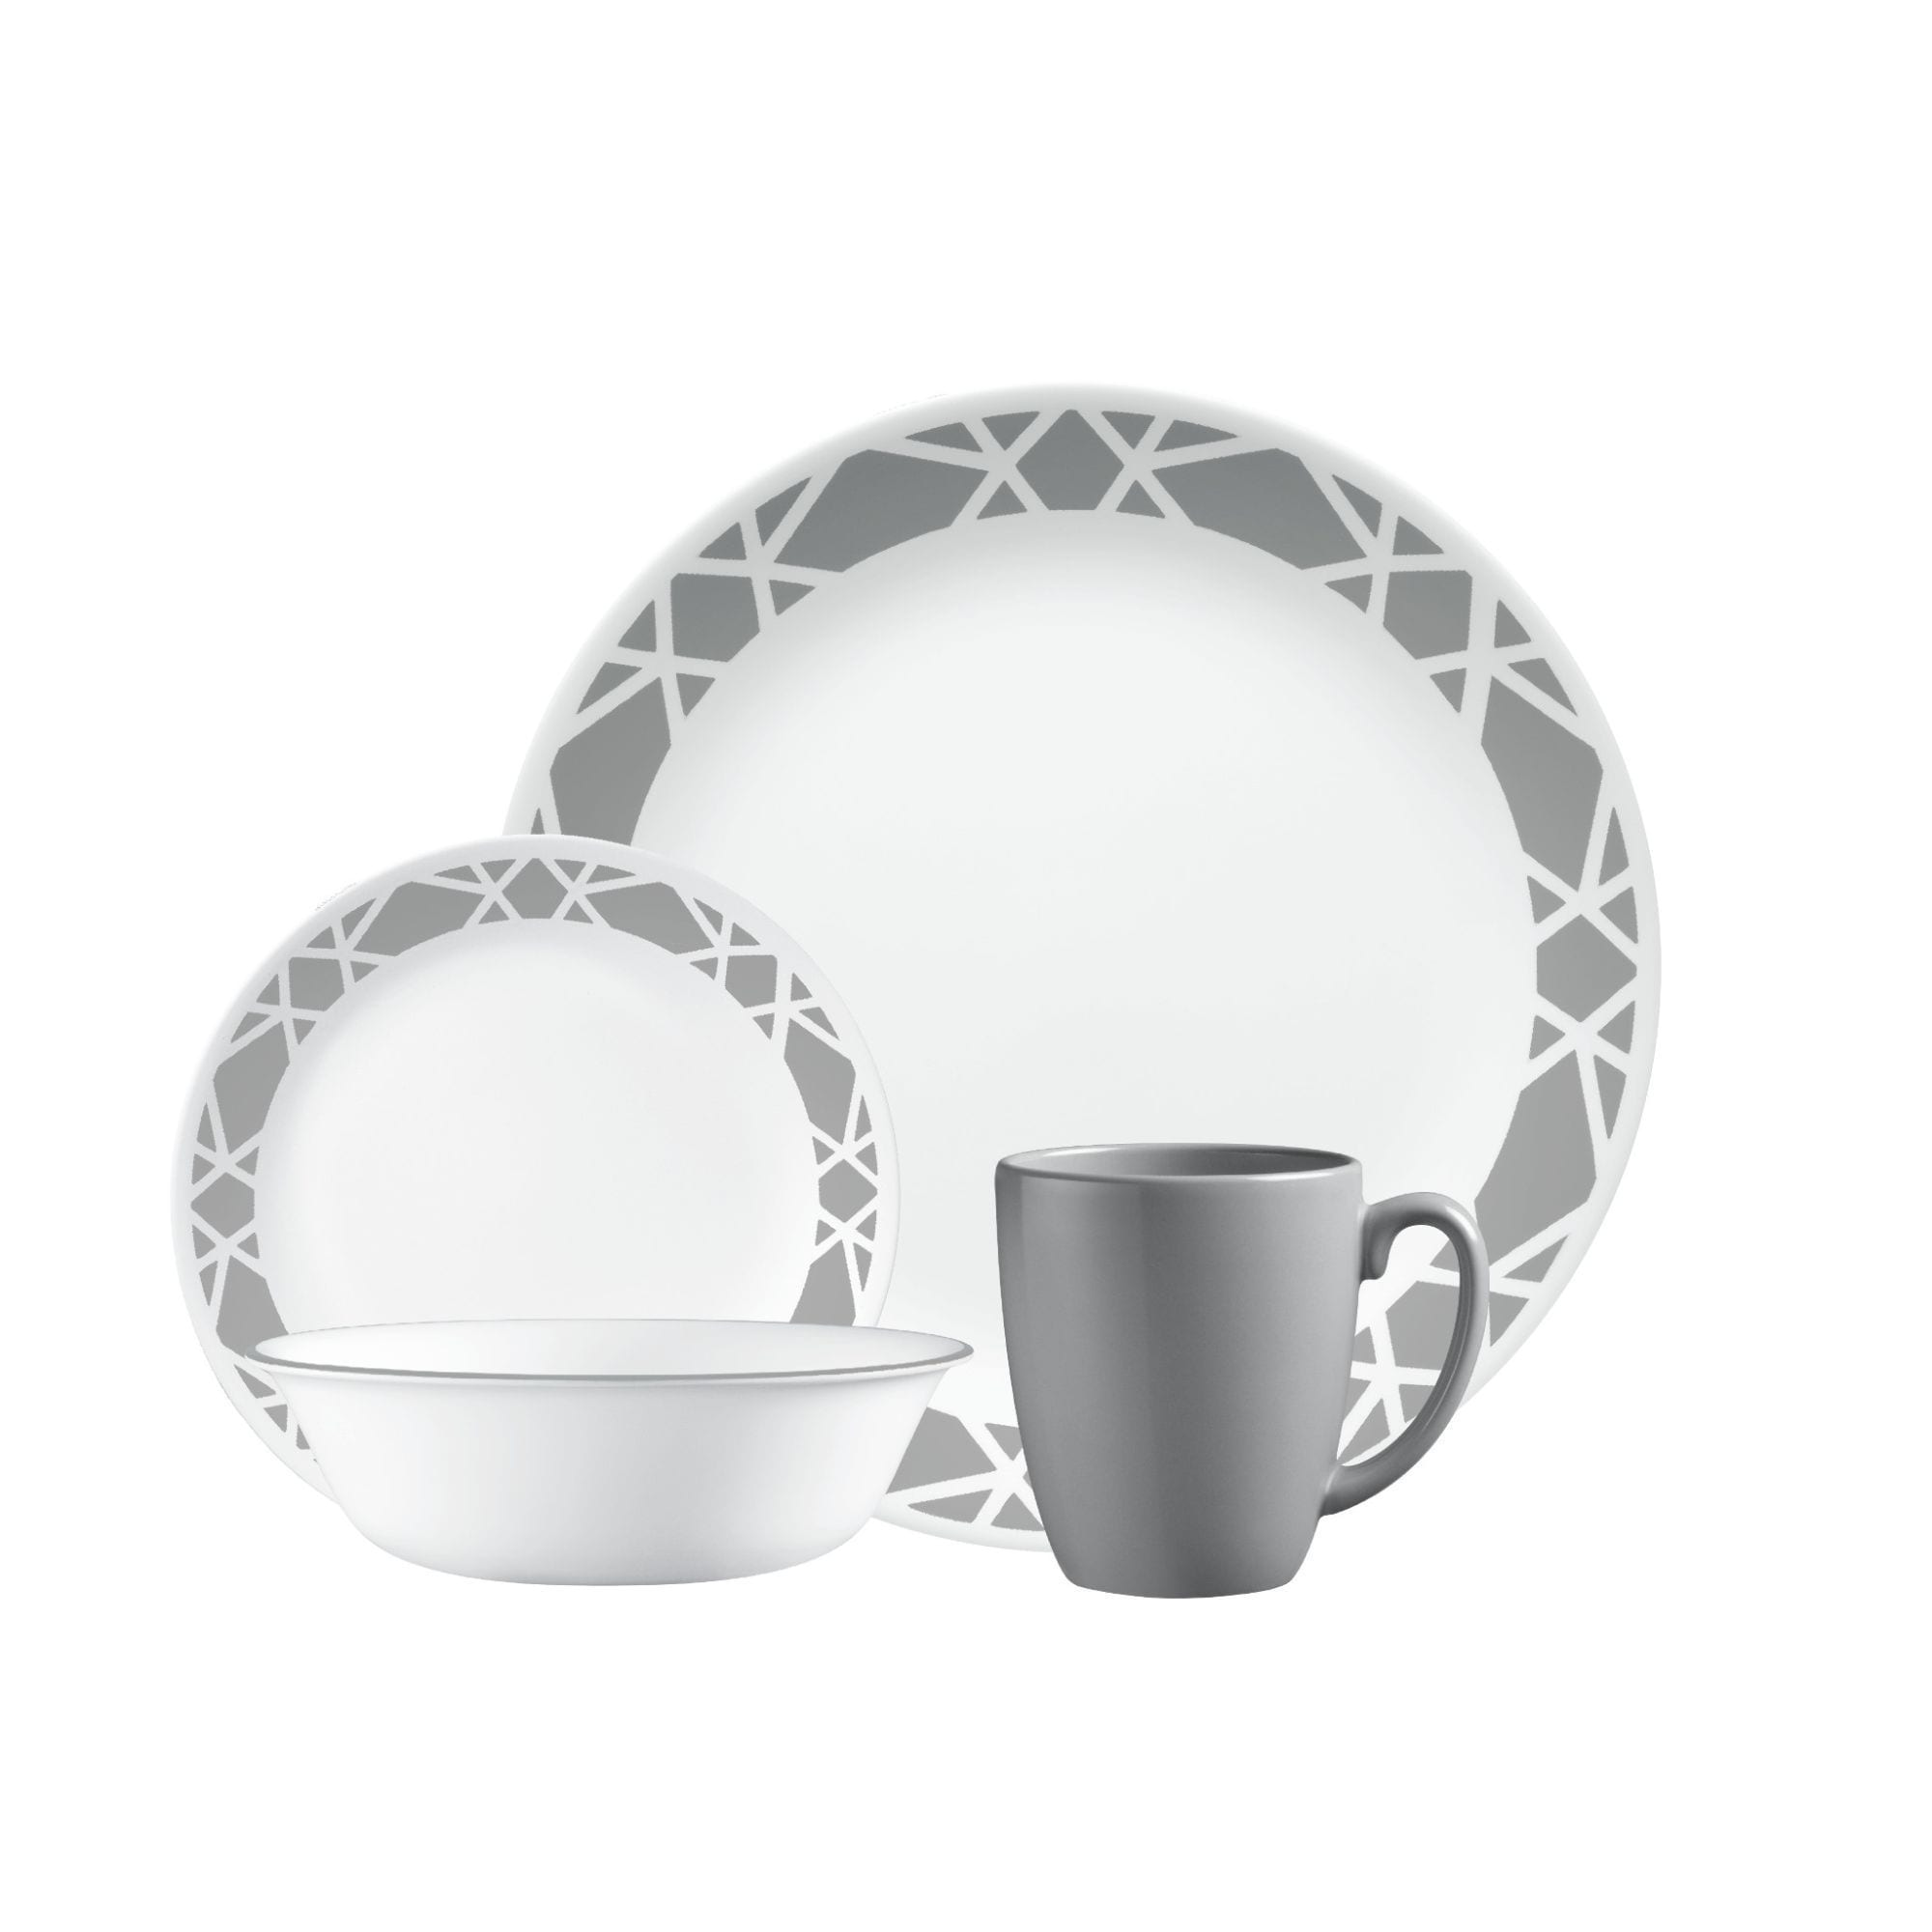 Corelle Livingware Modena 16-piece Dinnerware Set - Free Shipping Today - Overstock - 21076031  sc 1 st  Overstock & Corelle Livingware Modena 16-piece Dinnerware Set - Free Shipping ...